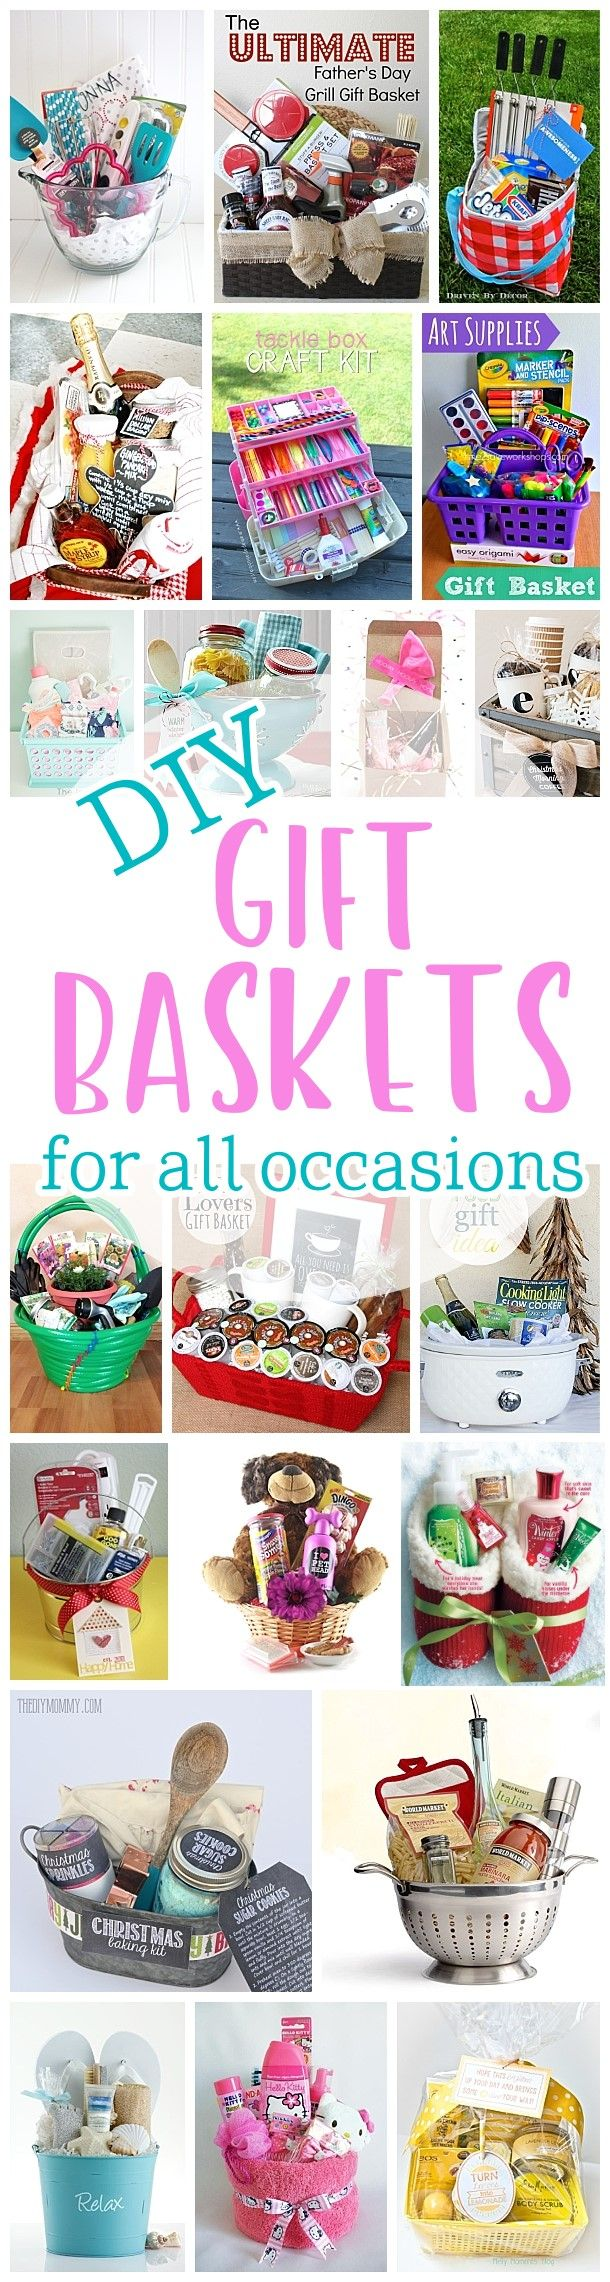 Do it Yourself Gift Baskets Ideas for Any and All Occasions - Perfect DIY Gift Baskets for Christmas - Birthdays - Thank You Gifts - Housewarmings - Baby Showers or anytime! #giftbaskets #giftbasketideas #easygifts #giftideas